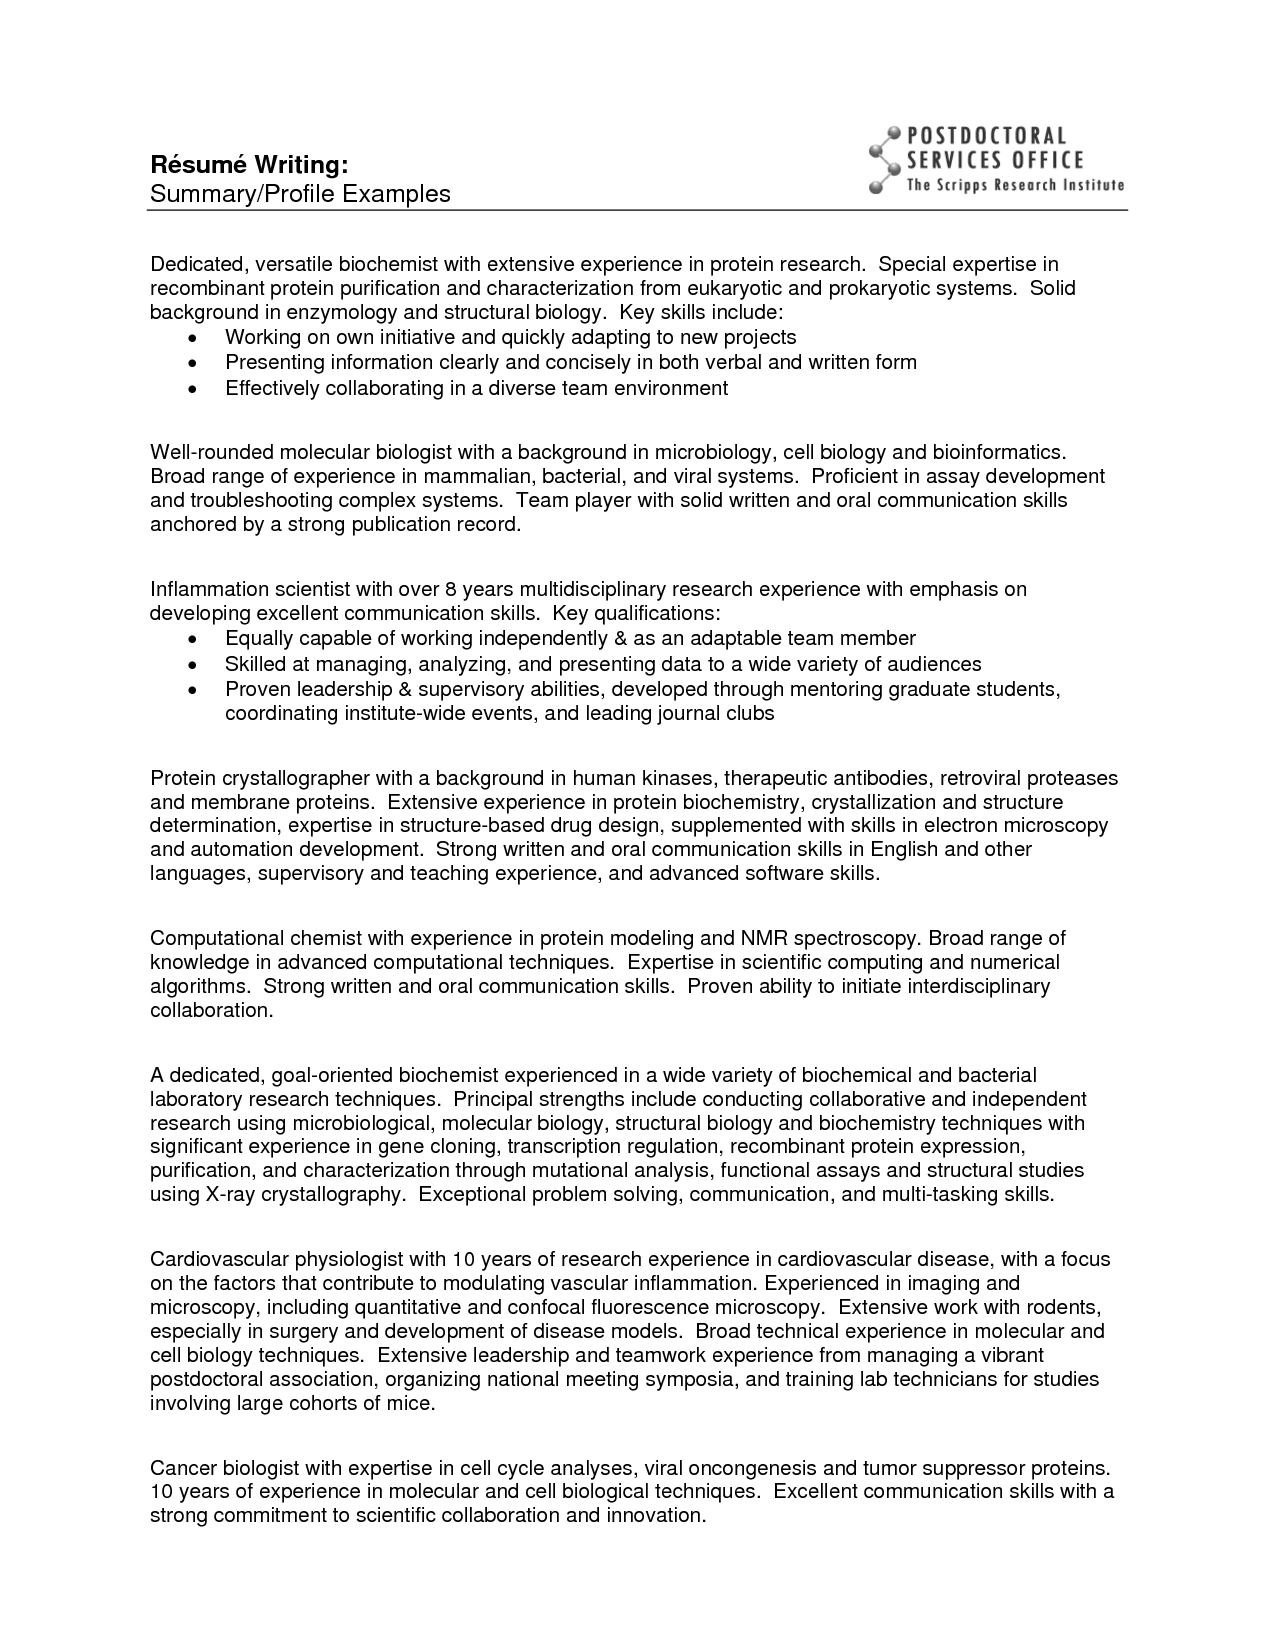 sample resumes for entry level biochemists